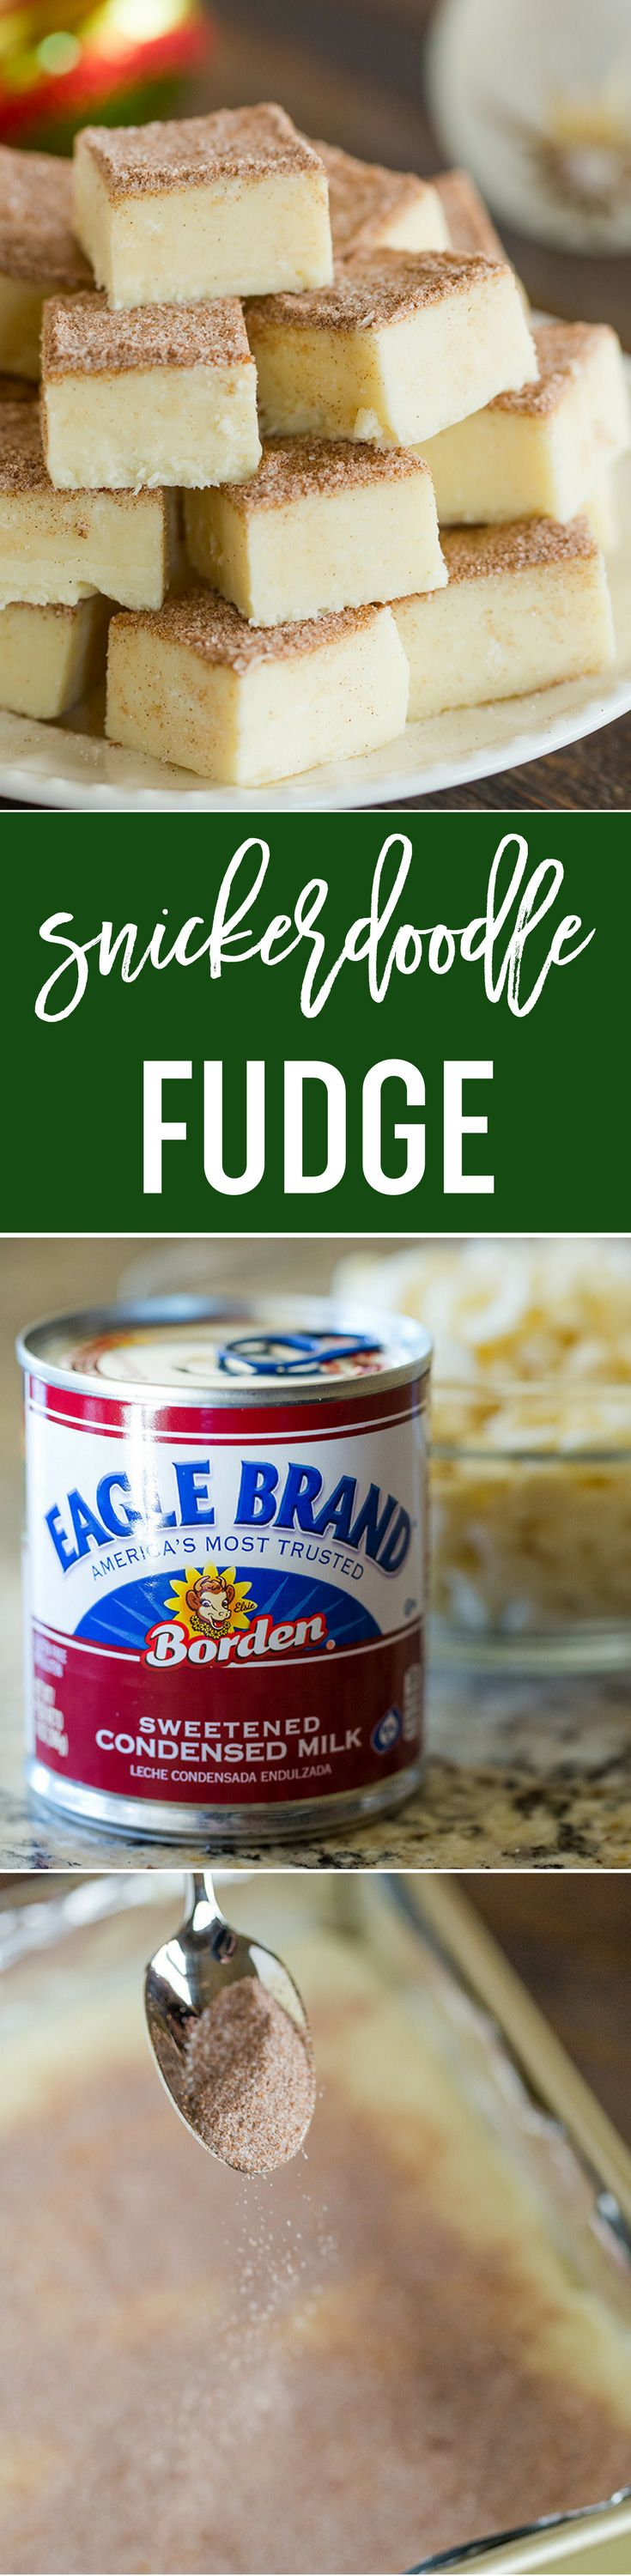 Snickerdoodle Fudge! Five ingredients, 10 minutes, and all of the wonderful flavors of snickerdoodle cookies. A perfect addition to holiday cookie trays. Created in partnership with @eaglebrand.    via @browneyedbaker